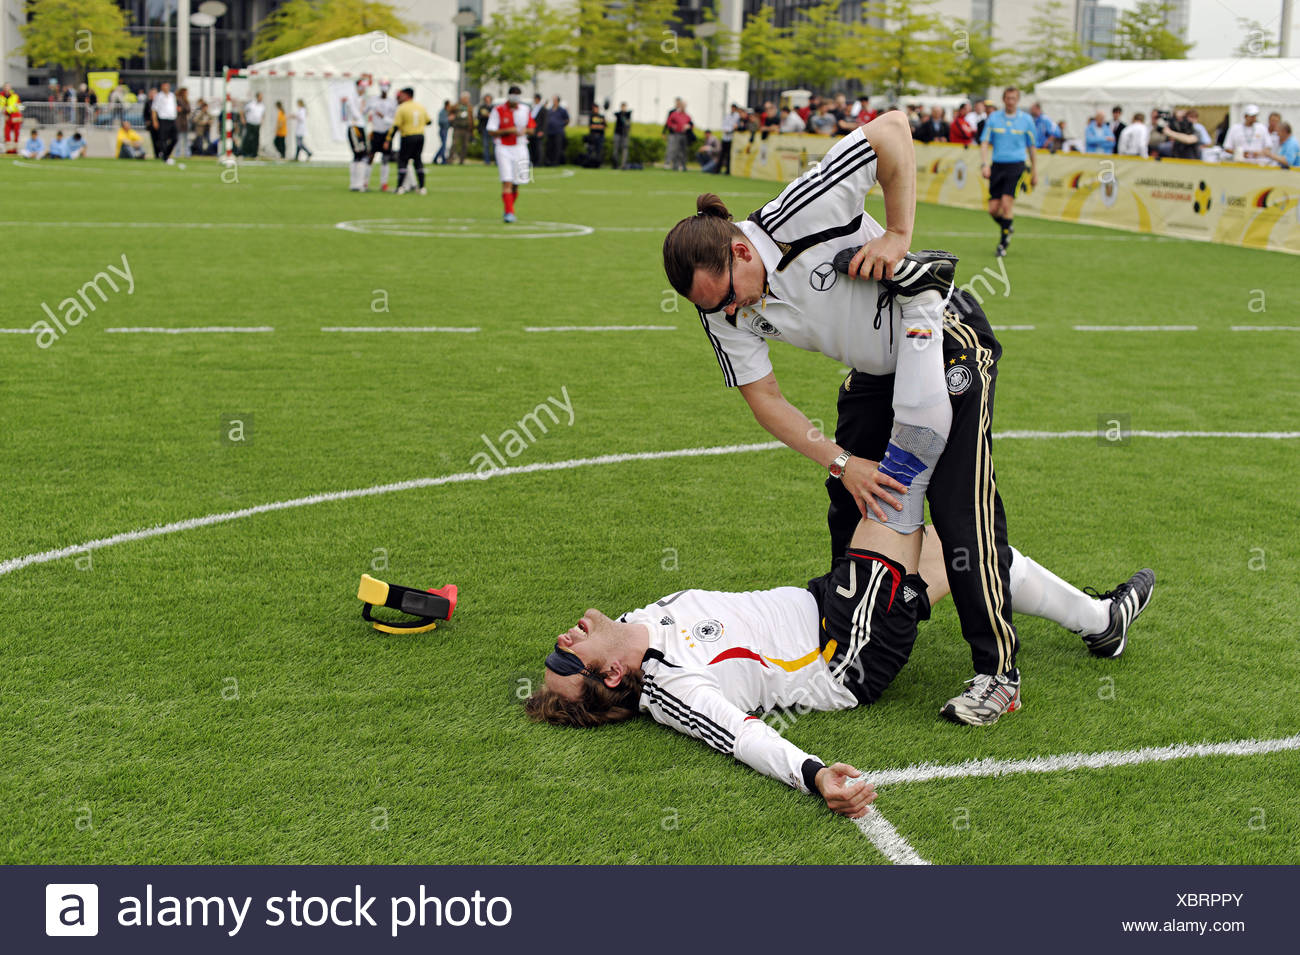 Day of Blind Football, Berlin, Germany - Stock Image